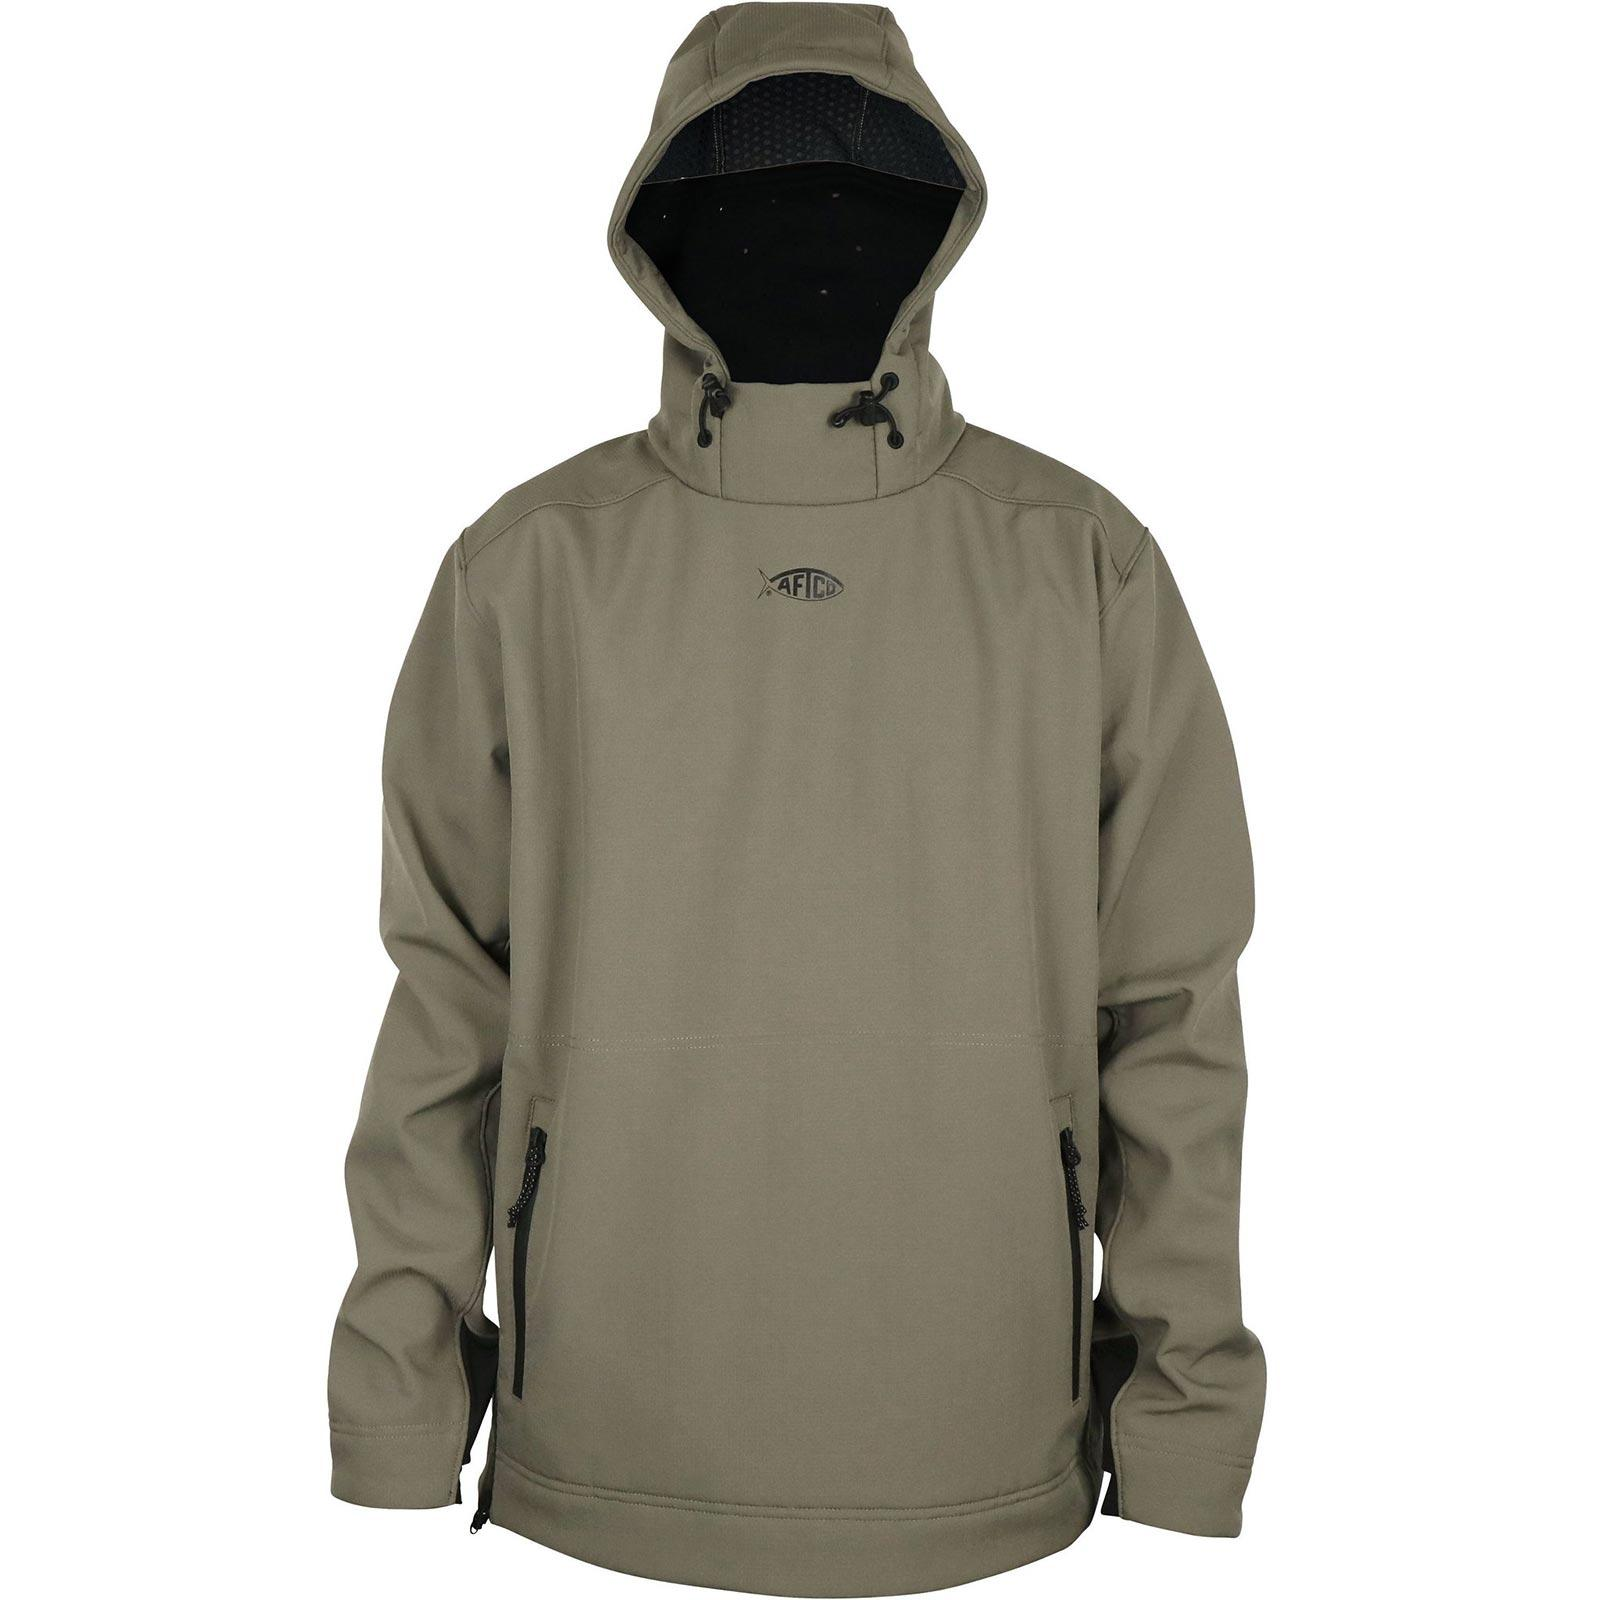 AFTCO Men's Reaper Windproof 3L Softshell Jacket